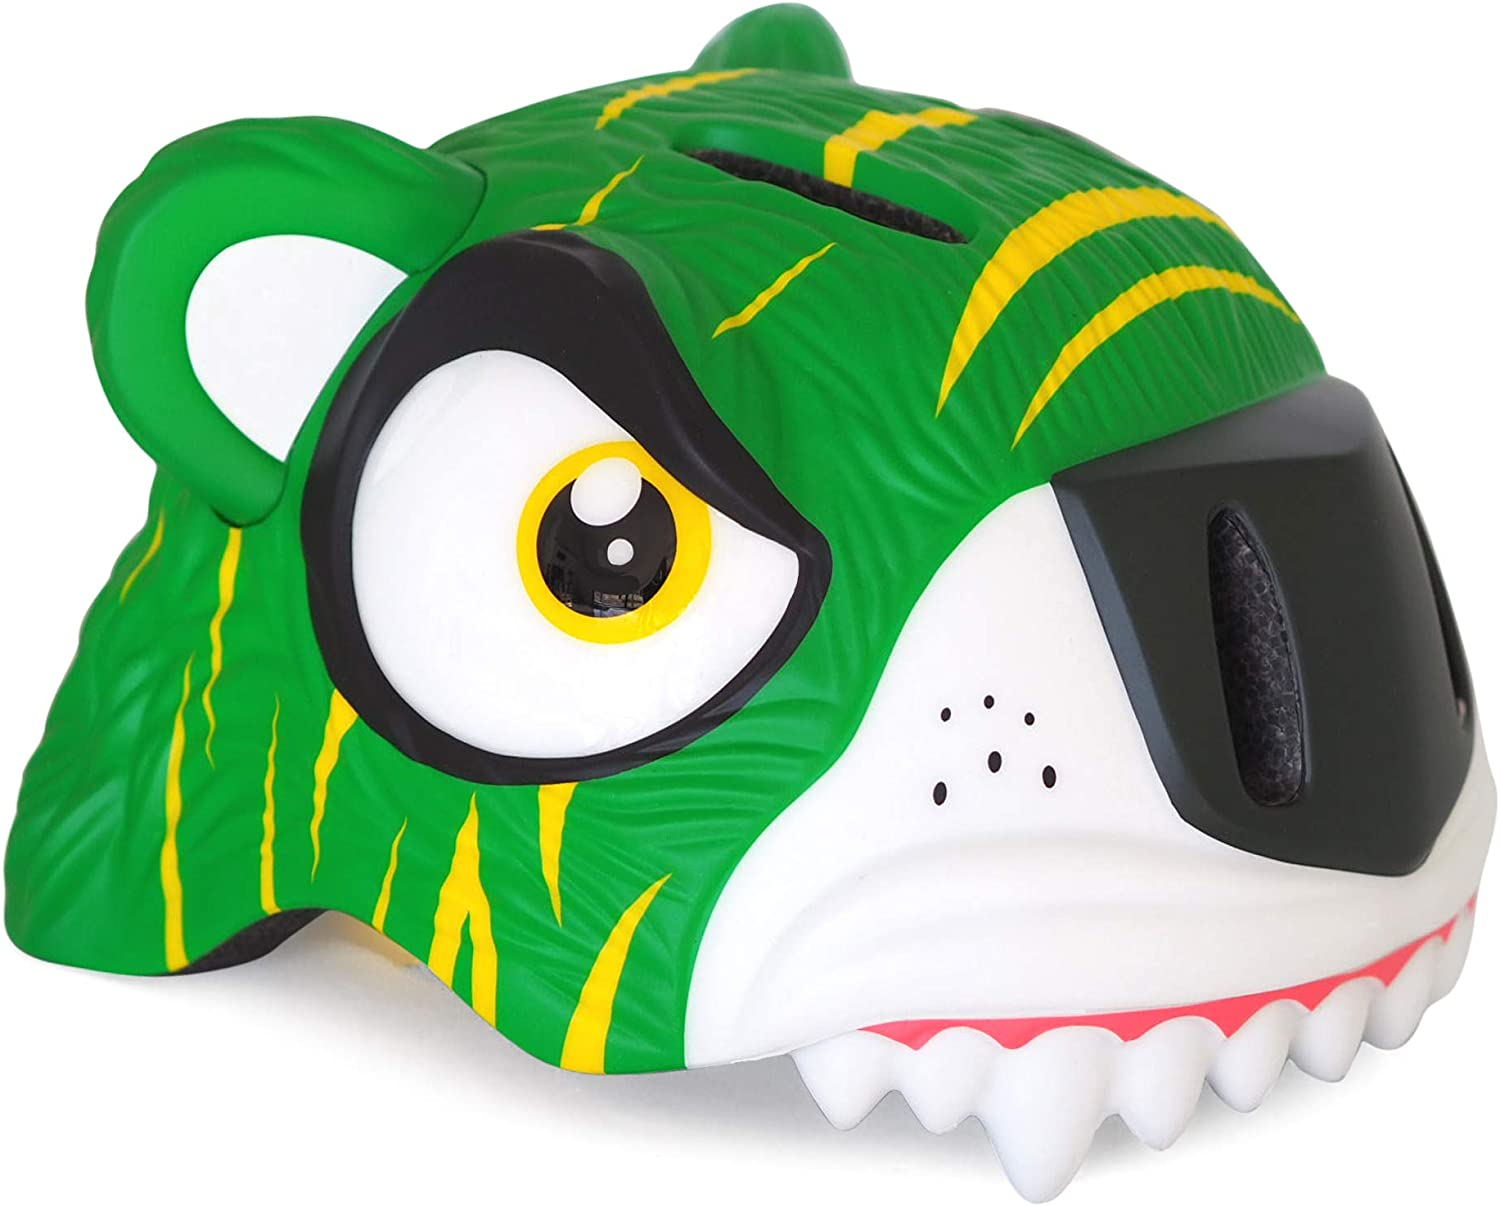 Crazy Safety Kids Bicycle Helmets   Dinosaurs, Sharks, Giraffes, Tigers og Leopards   Age 2-8 Years Old   Size 19.3